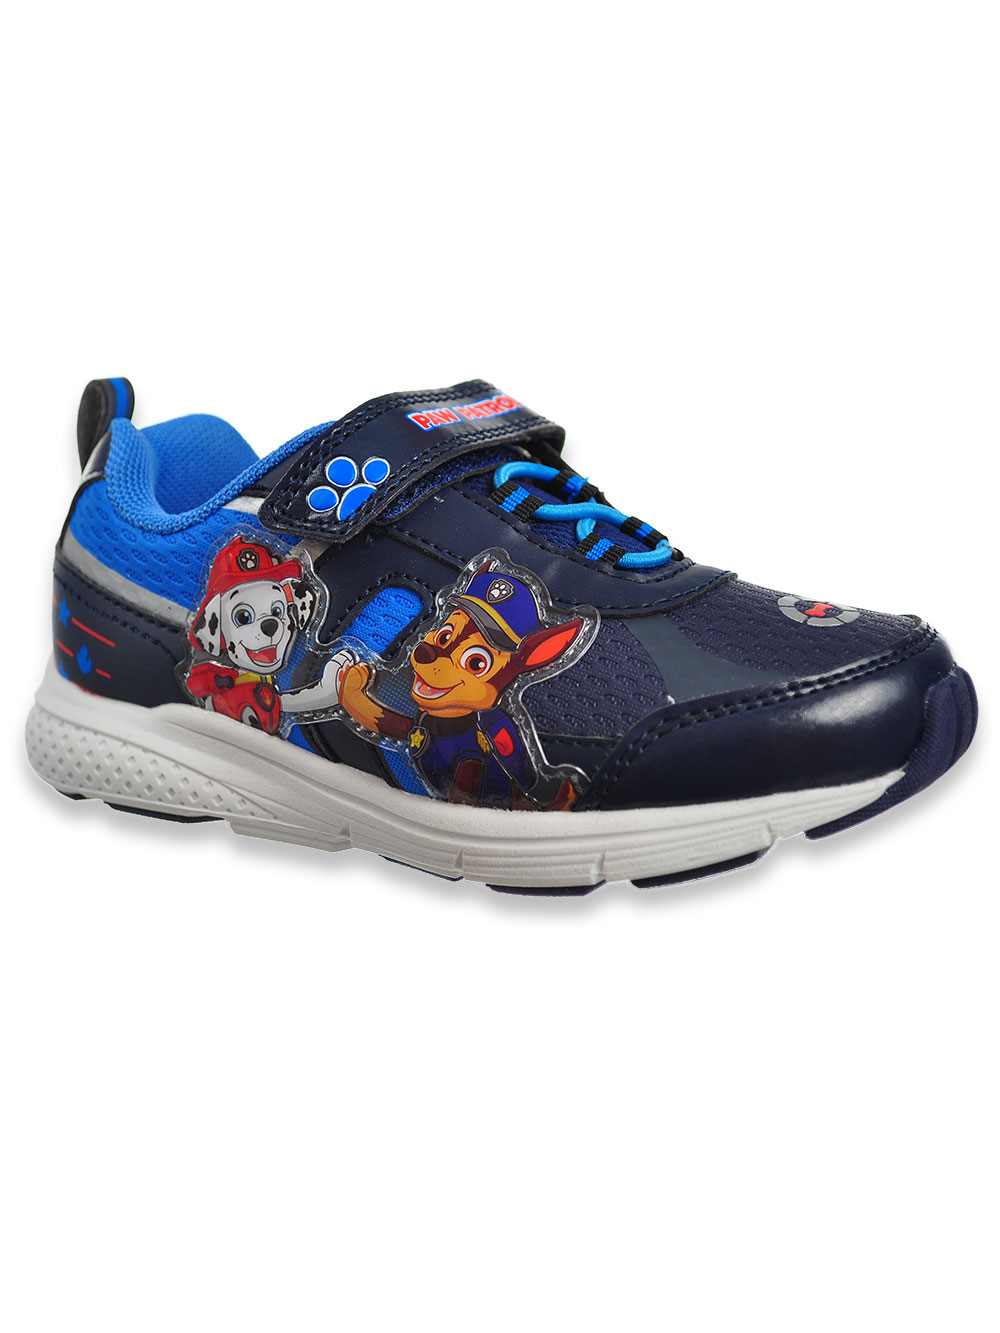 Sizes 7-12 Paw Patrol Boys/' Light-Up Sneakers